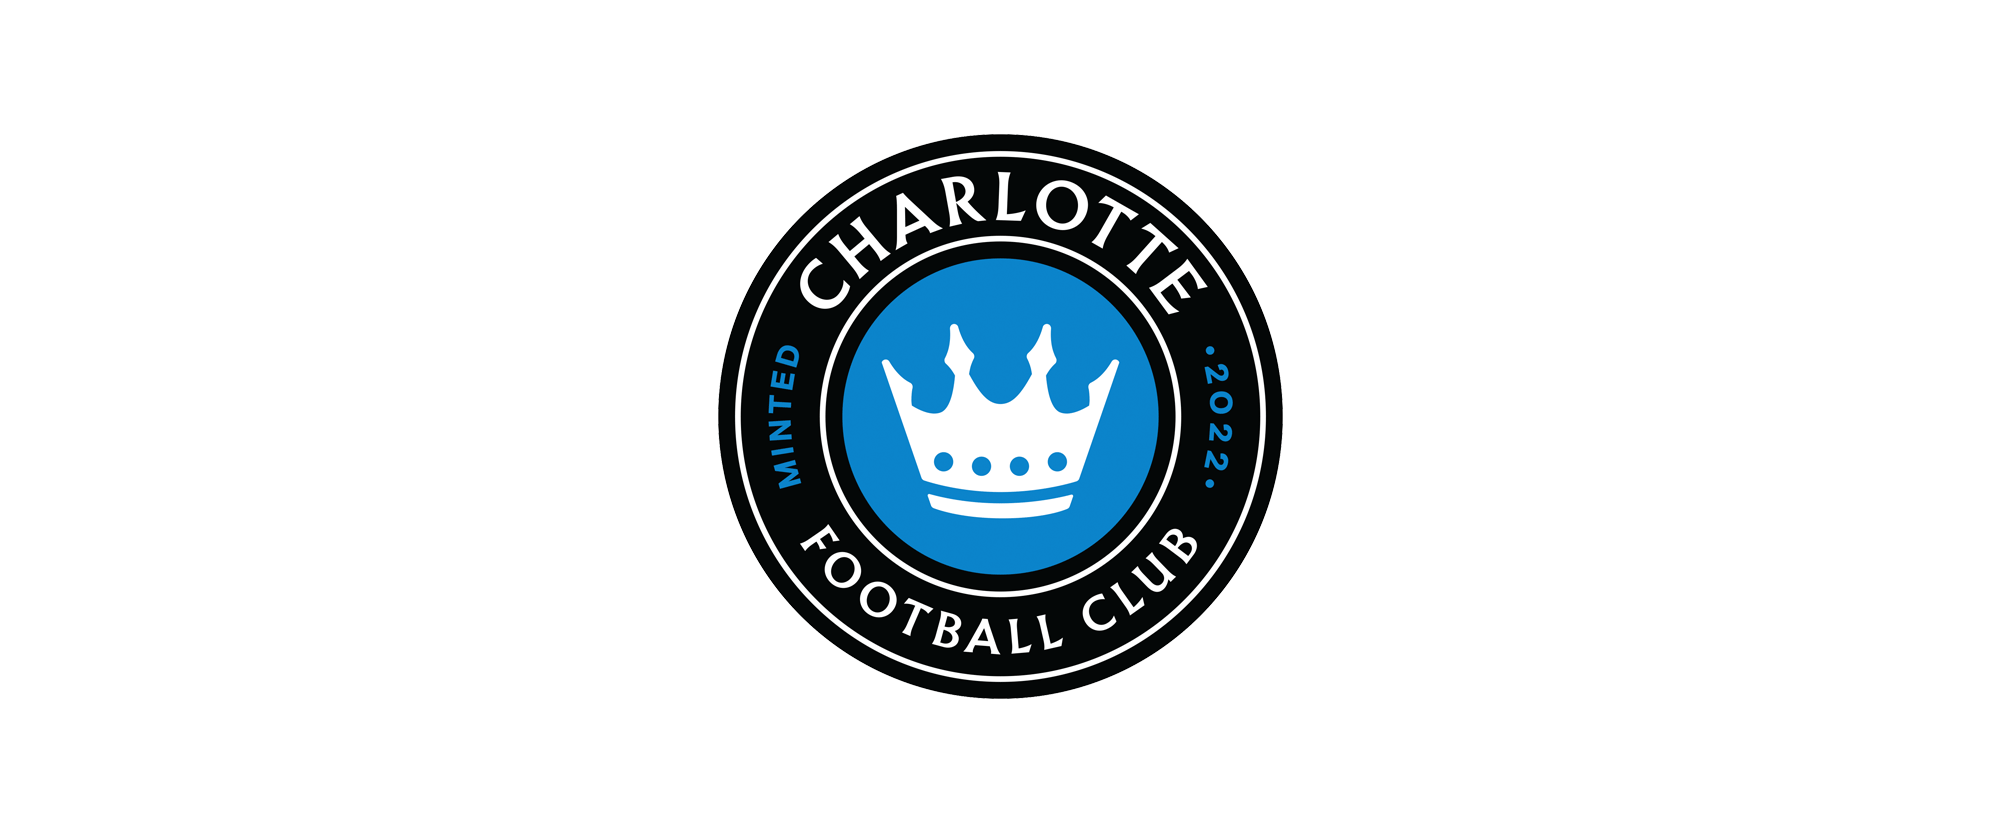 New Name and Logo for Charlotte FC